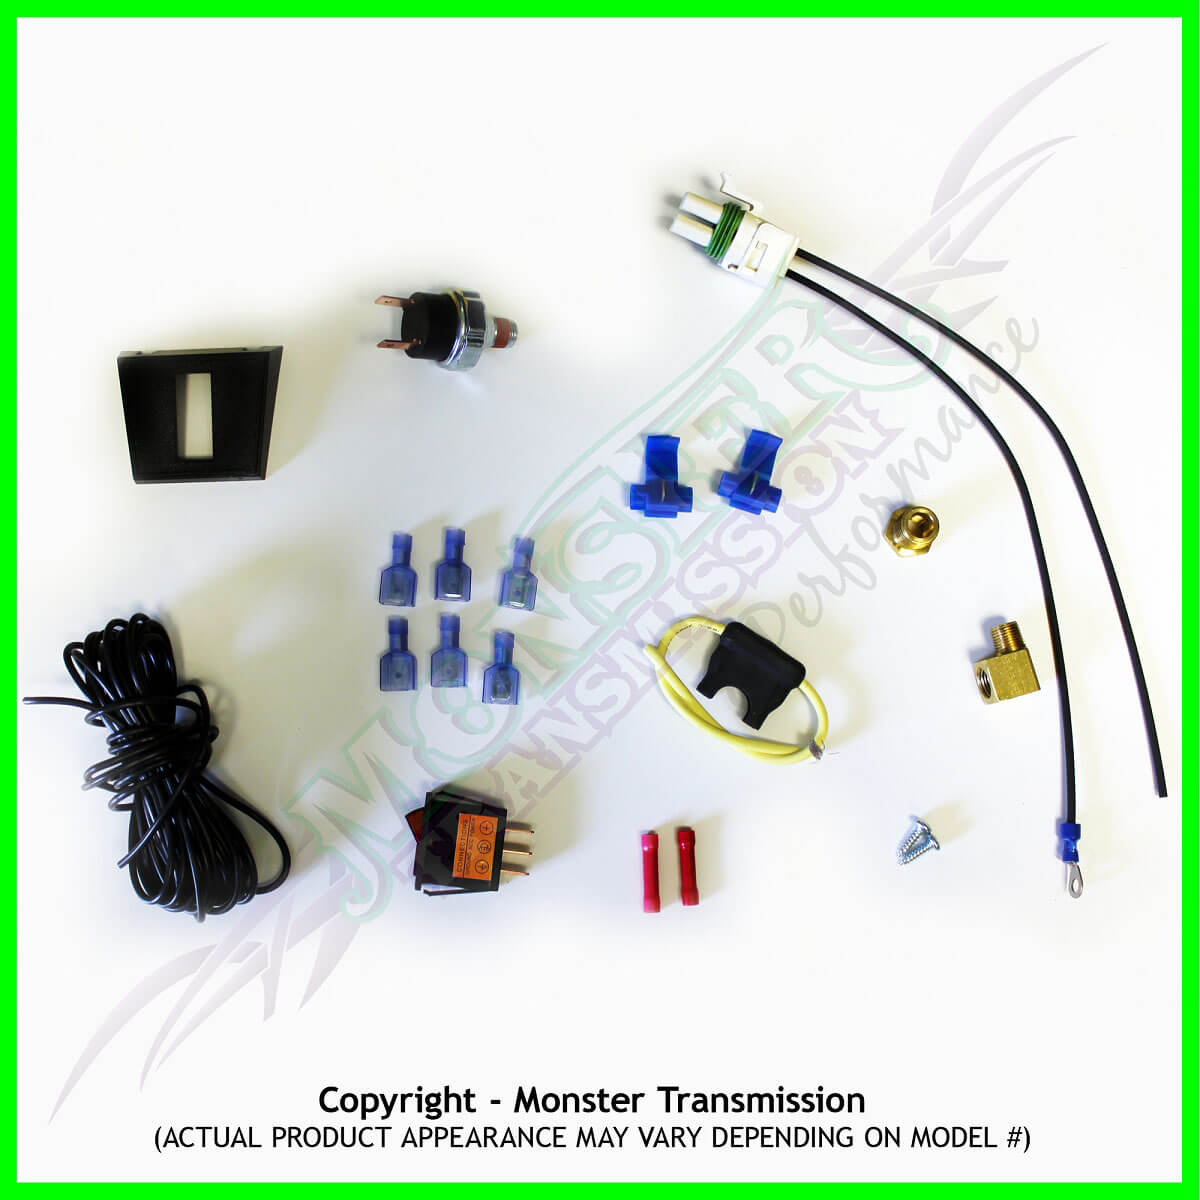 Wiring Diagram Manual On 700r4 Transmission Lock Up Wiring Diagram on 4l60e check ball diagram, 700r transmission diagram, gm 400 transmission diagram, 700r4 wiring harness, th350 transmission diagram, svo vacuum diagram, 200r4 lock up kit diagram, 700r4 overdrive wiring, 2005 chrysler 300 fuse box diagram, 4l60e clutch pack diagram, 700r4 solenoid replacement, 700r4 switch locations, 700r4 valve body, 700r4 transmission, venn diagram, 700r4 wiring a non-computer, 700r4 electrical connections, chevy 4.3 vacuum diagram, 700r4 conversion wiring, 700r4 pressure switch,